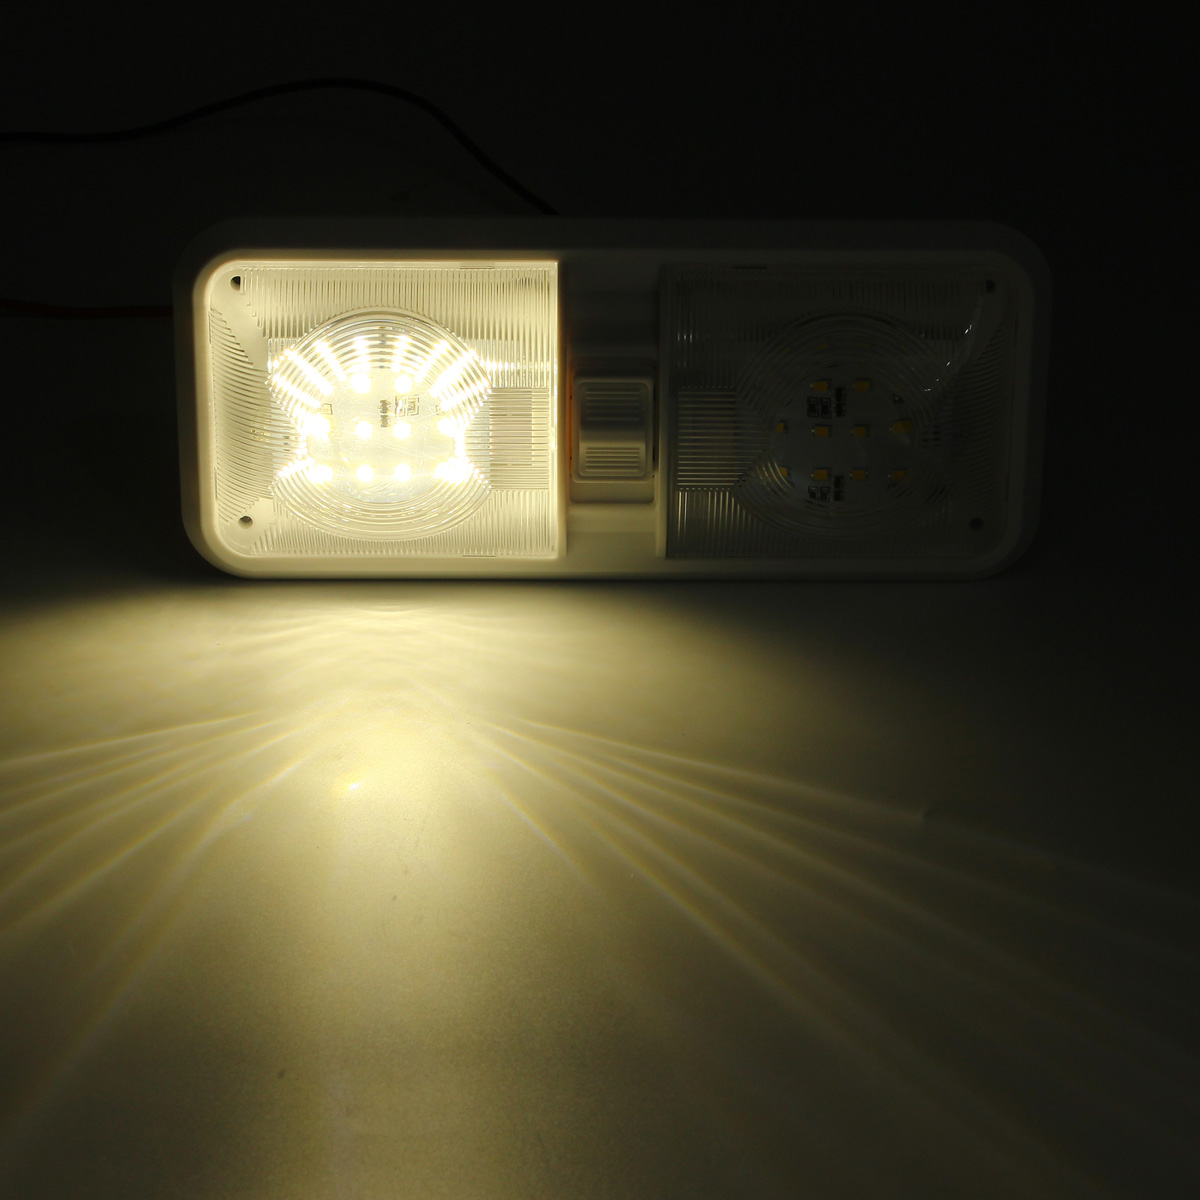 LED Interior Double Dome Ceiling Lights Lamp 6.5W 4500K White 12V for RV Boat Camper Trailer